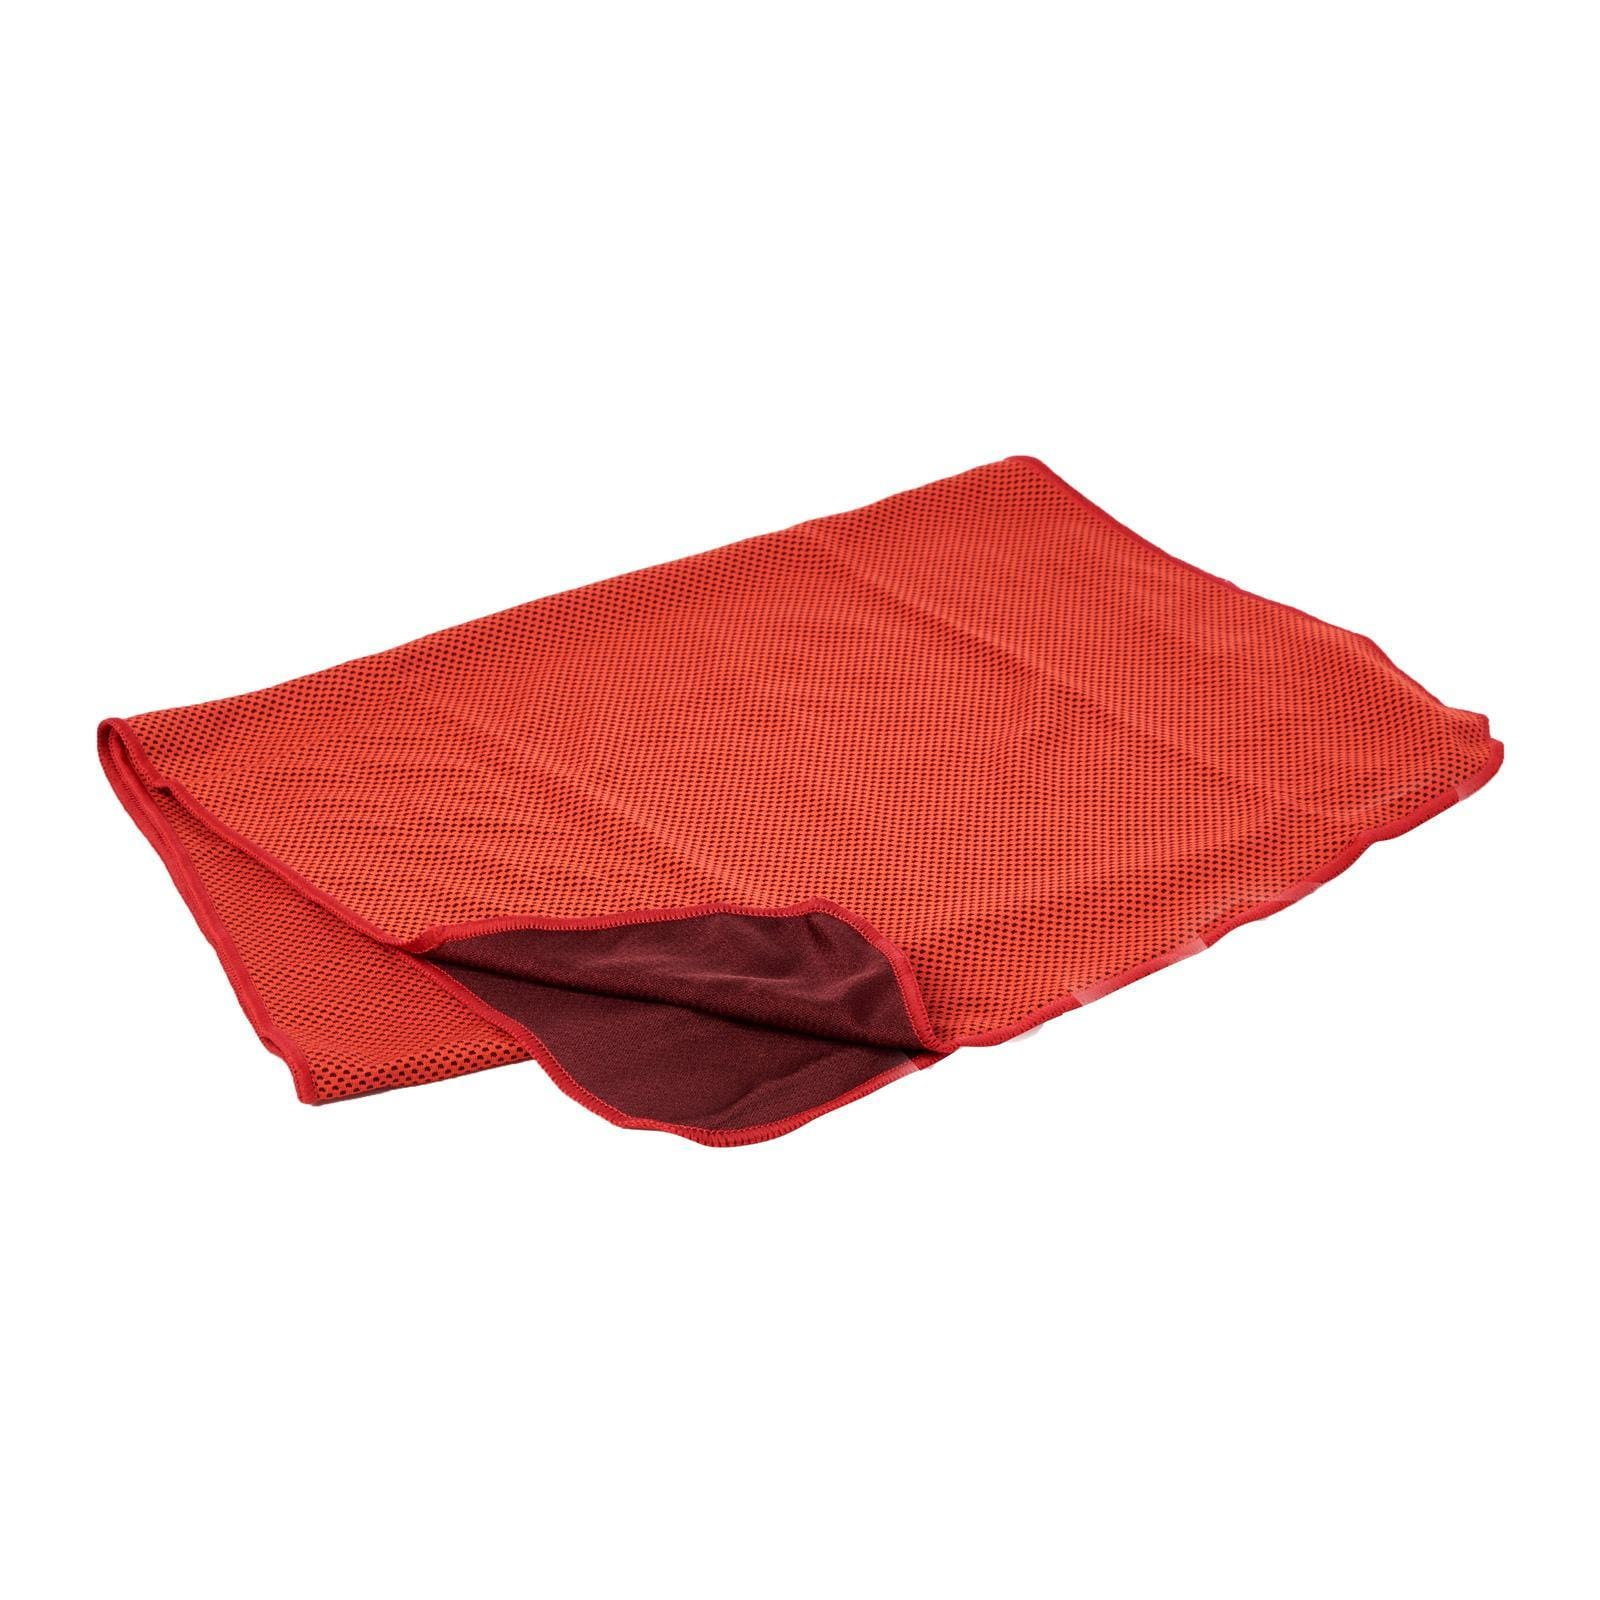 Coolite Sports Towel In Red - FUNFIT